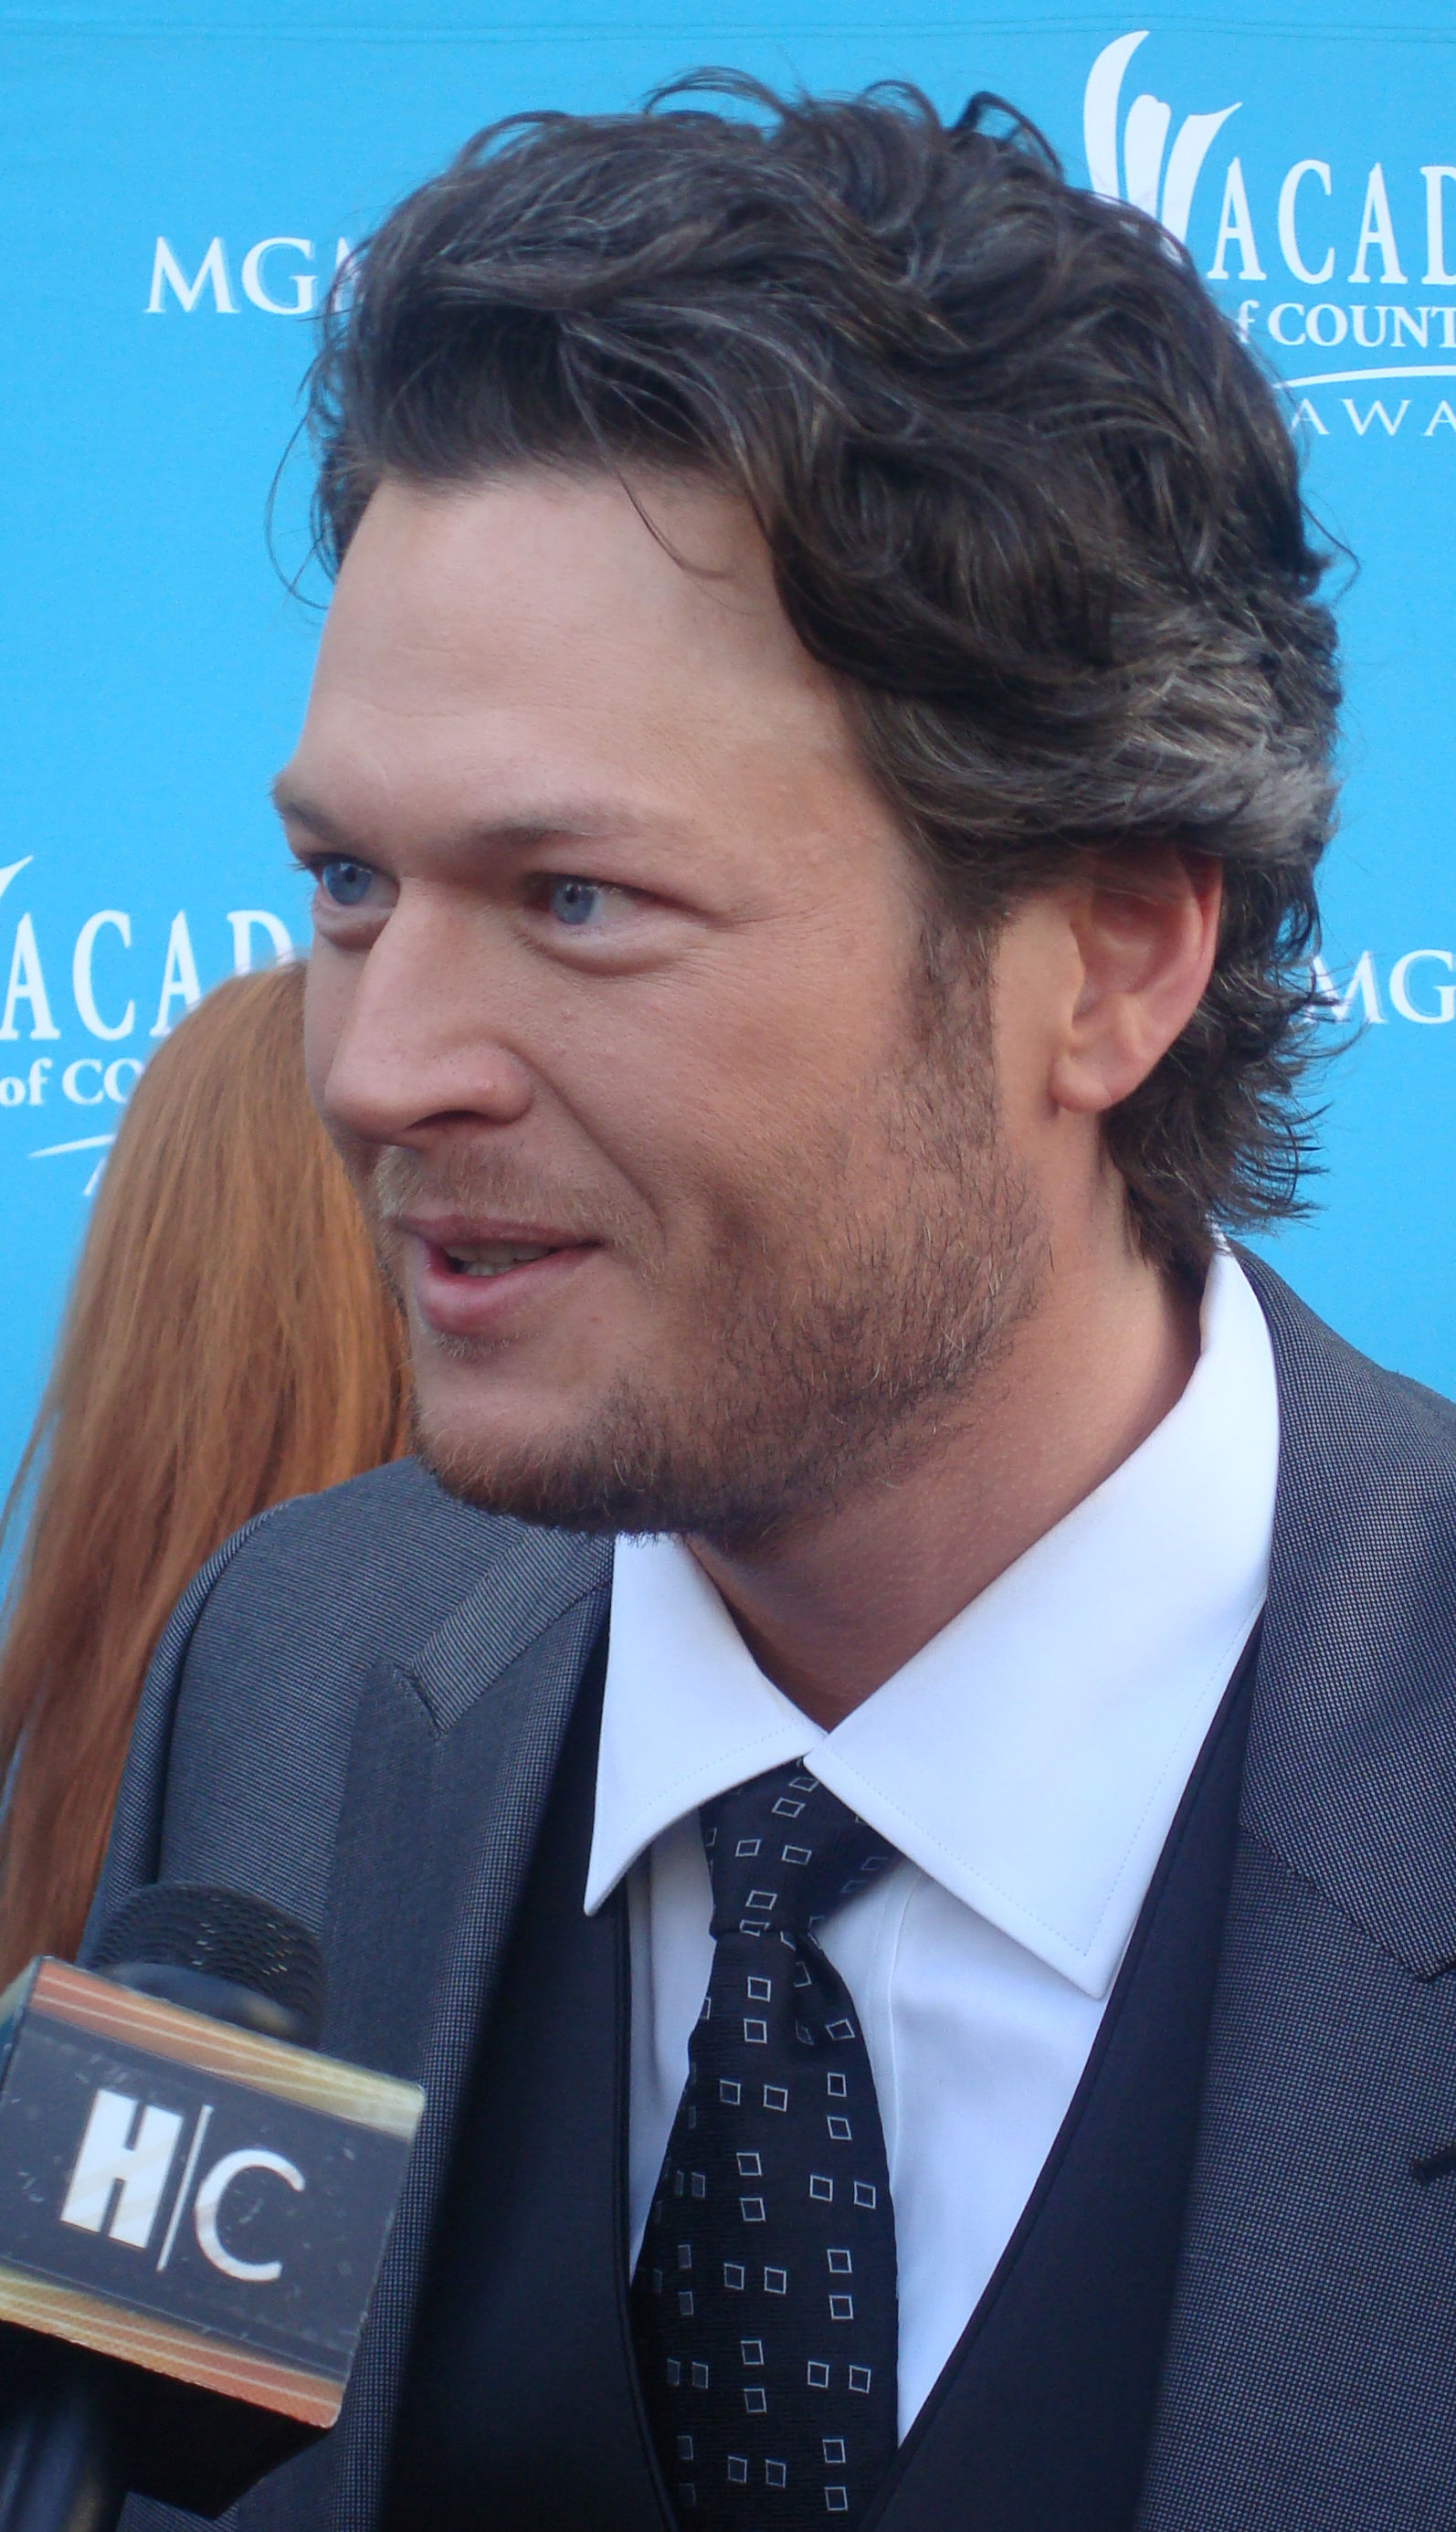 Photo of Blake Shelton: American country music singer and television personality